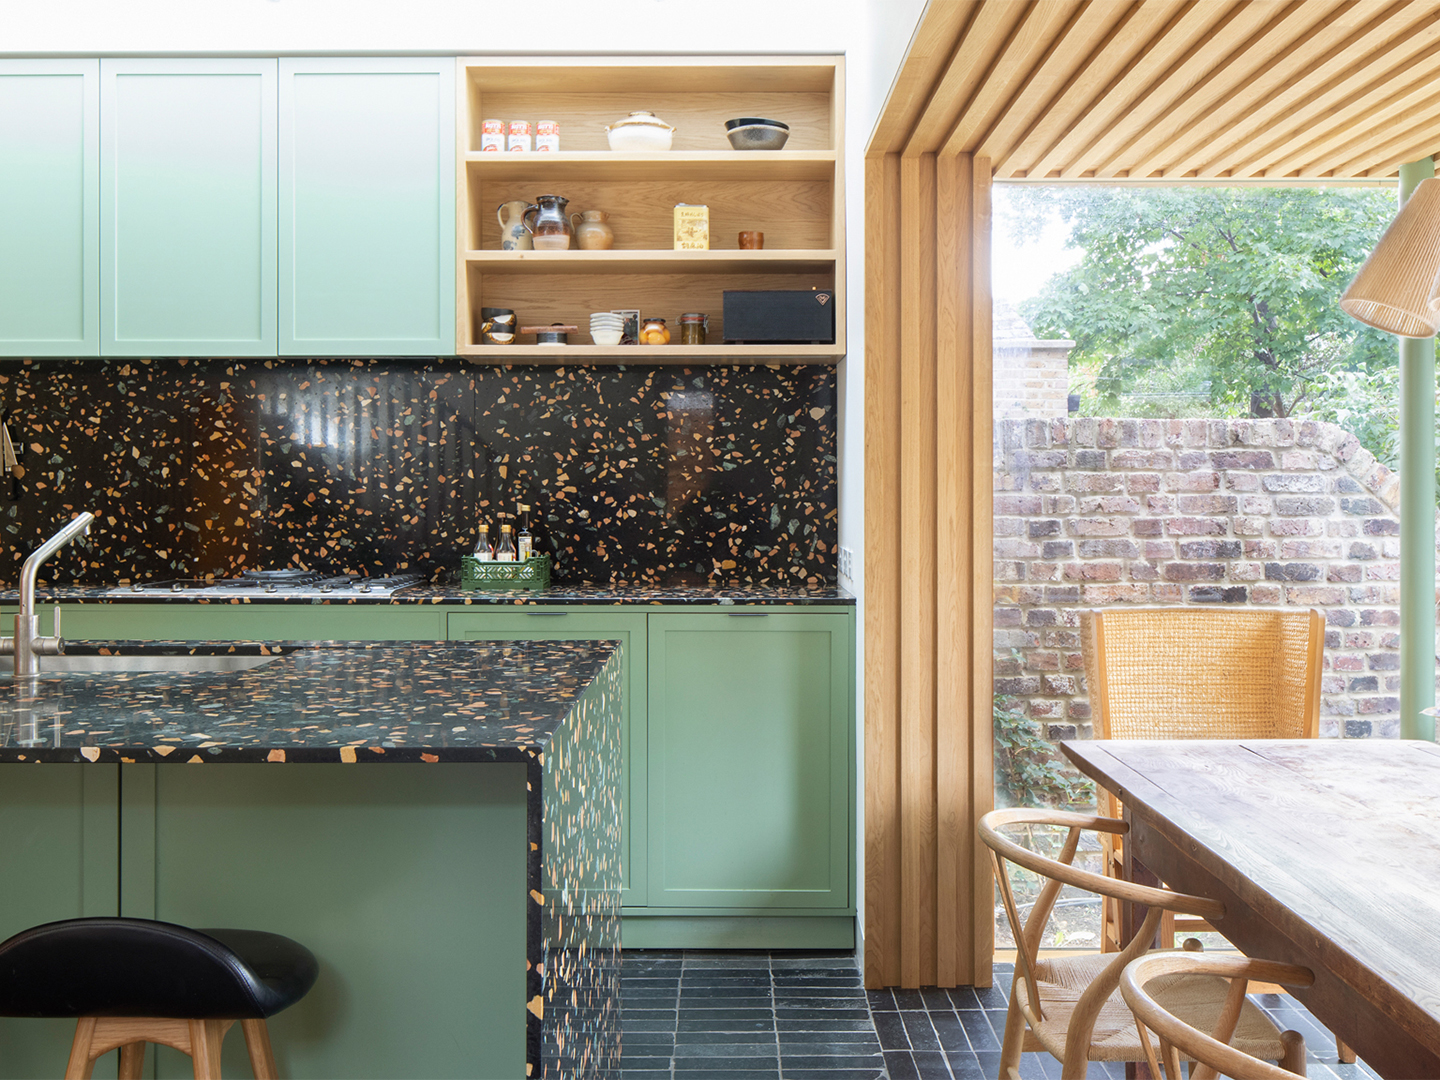 House in Hackney, YARD Architects